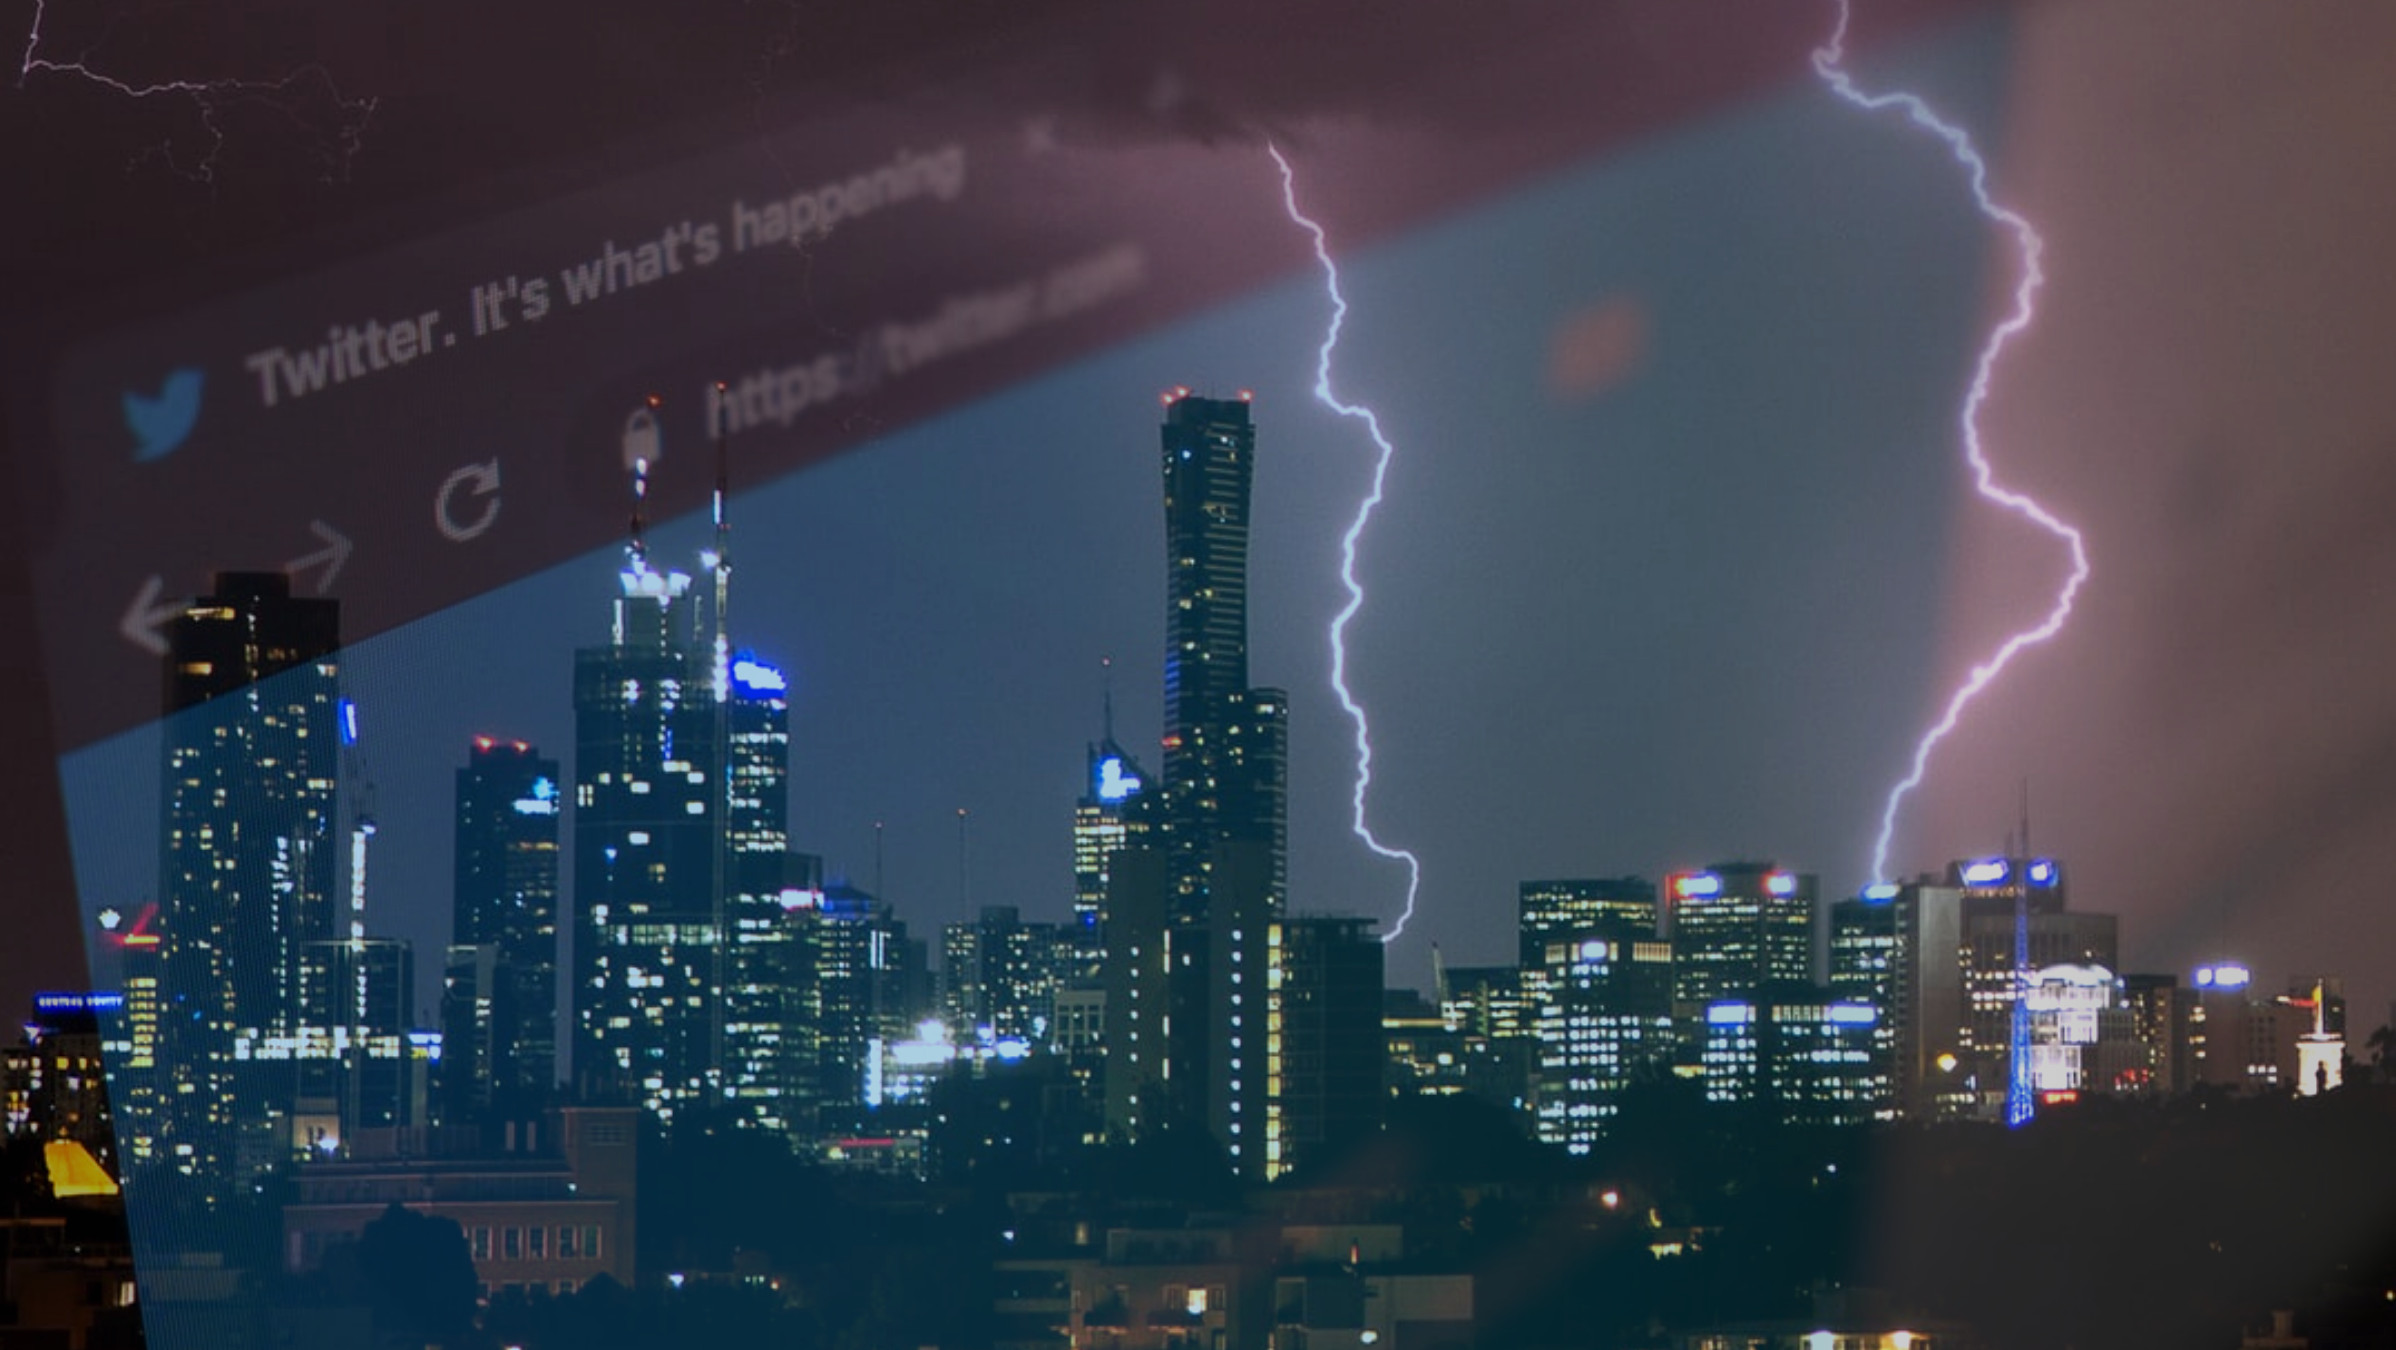 View of lightning stiking city buildings through a high rise window.